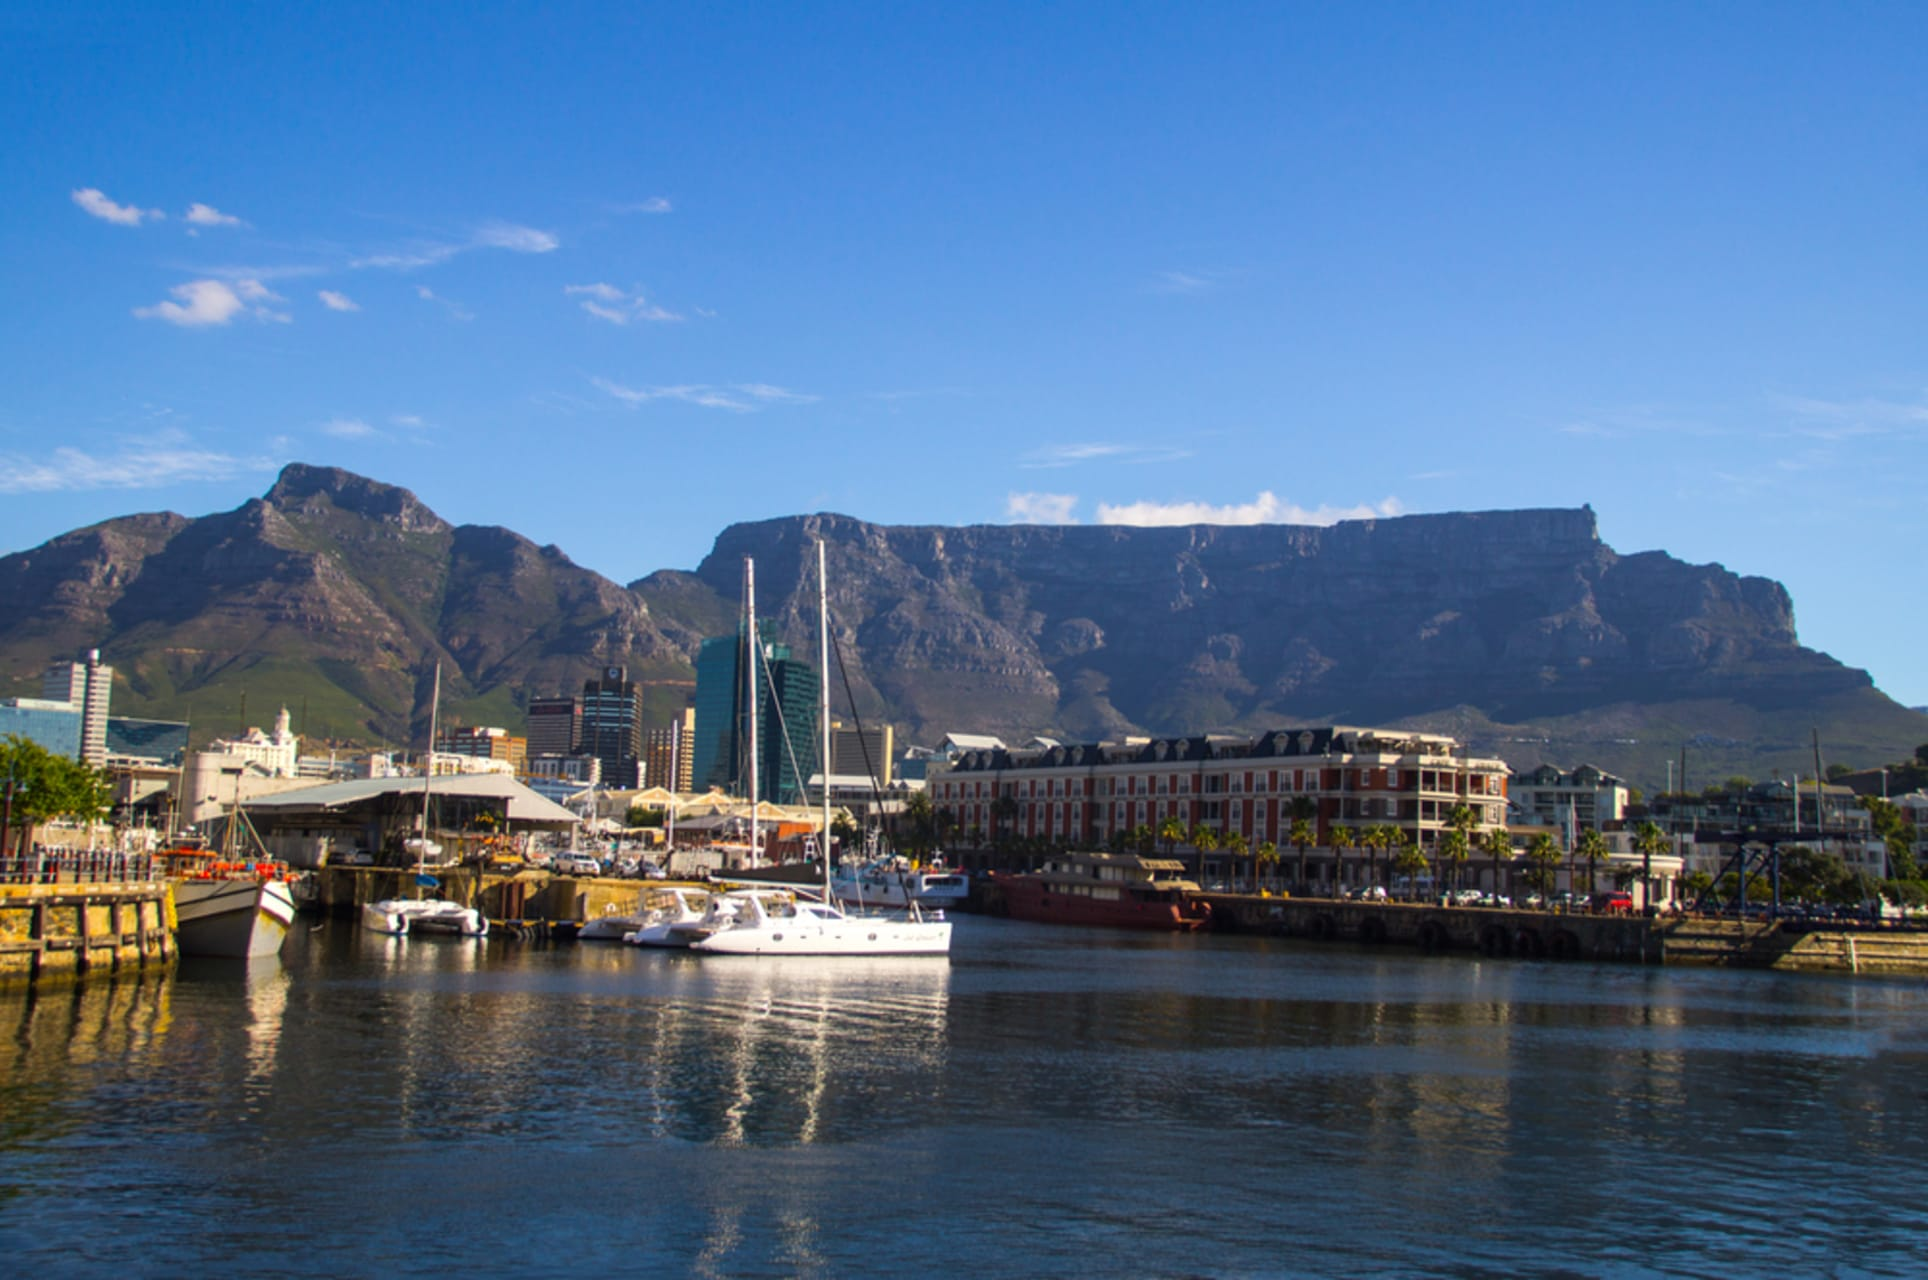 Cape Town - The Victoria & Alfred Waterfront: Cape Town's Original Harbour